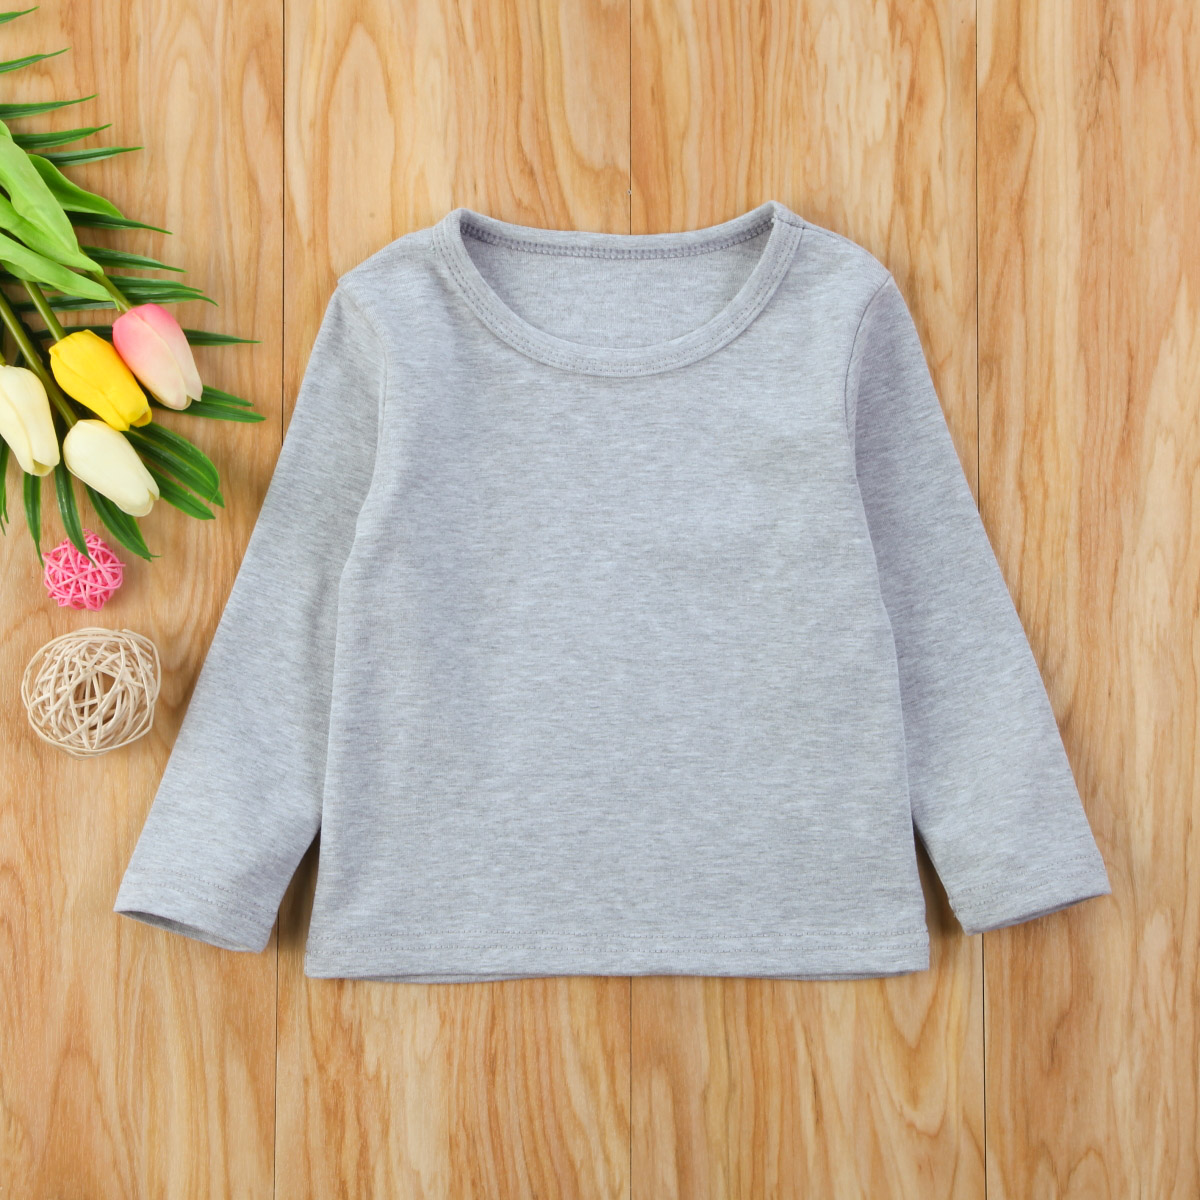 Autumn Cotton Newborn Infant Kids Baby Boys Girls Clothes Solid Cotton Soft Clothing Long Sleeves T-shirt Tops 5